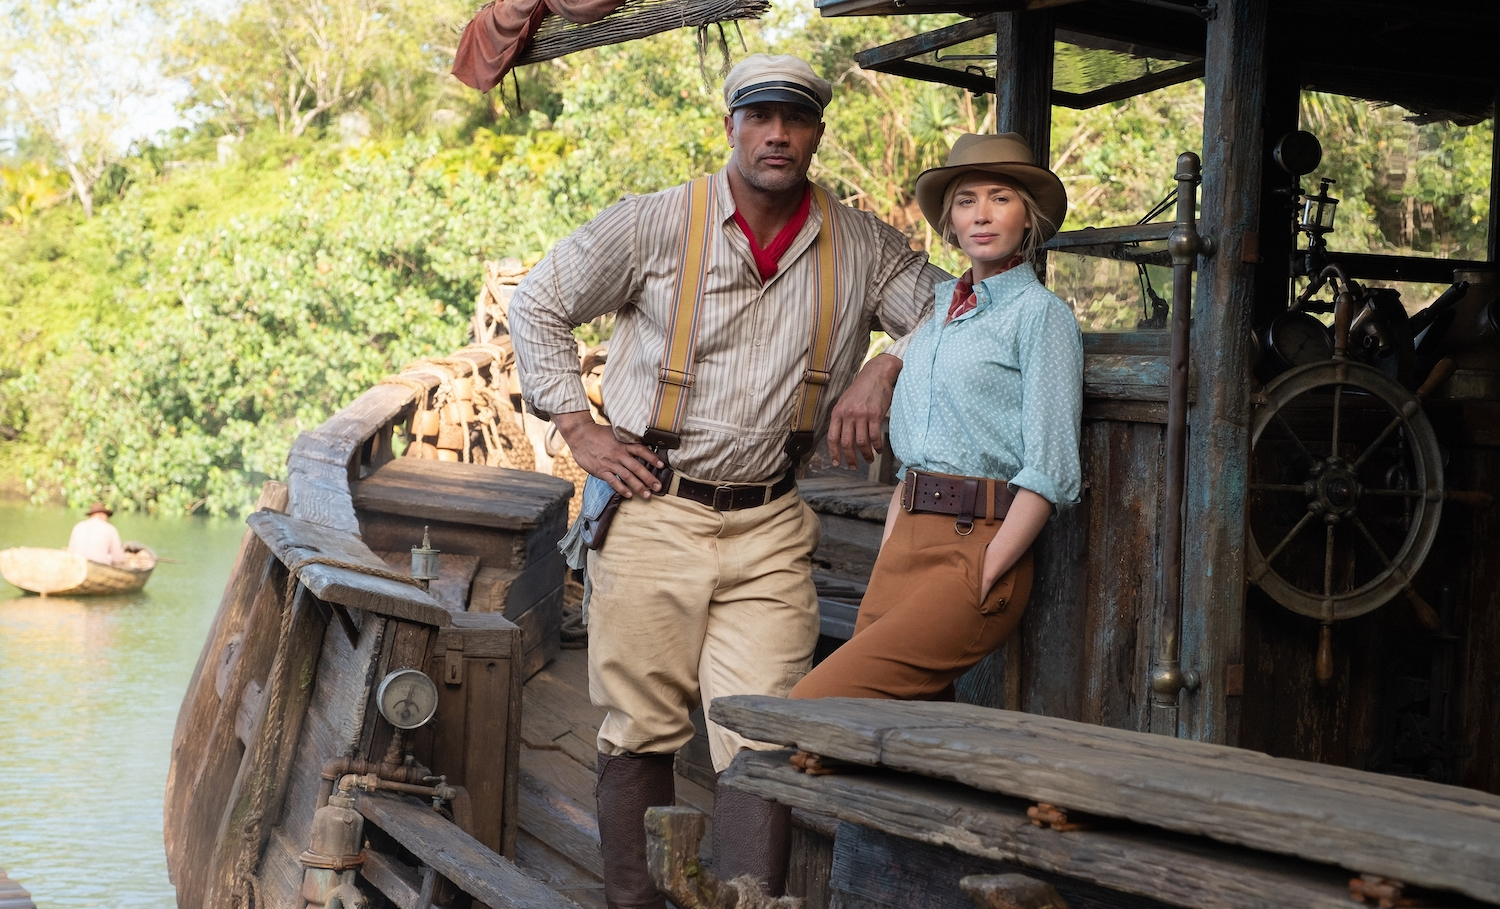 Jungle Cruise Review: Dwayne Johnson and Emily Blunt Make It a Pleasure - Den of Geek